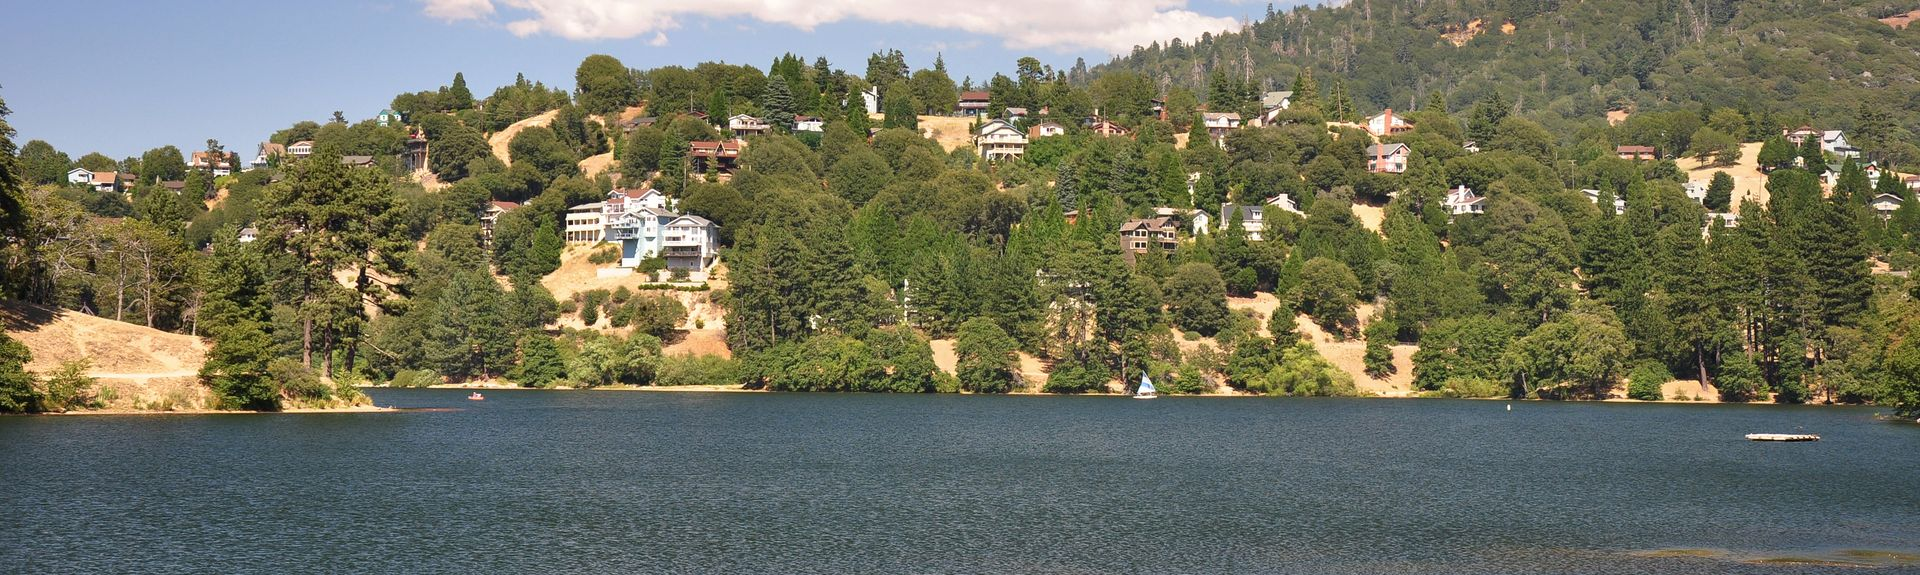 Lake Gregory, Crestline, CA, USA